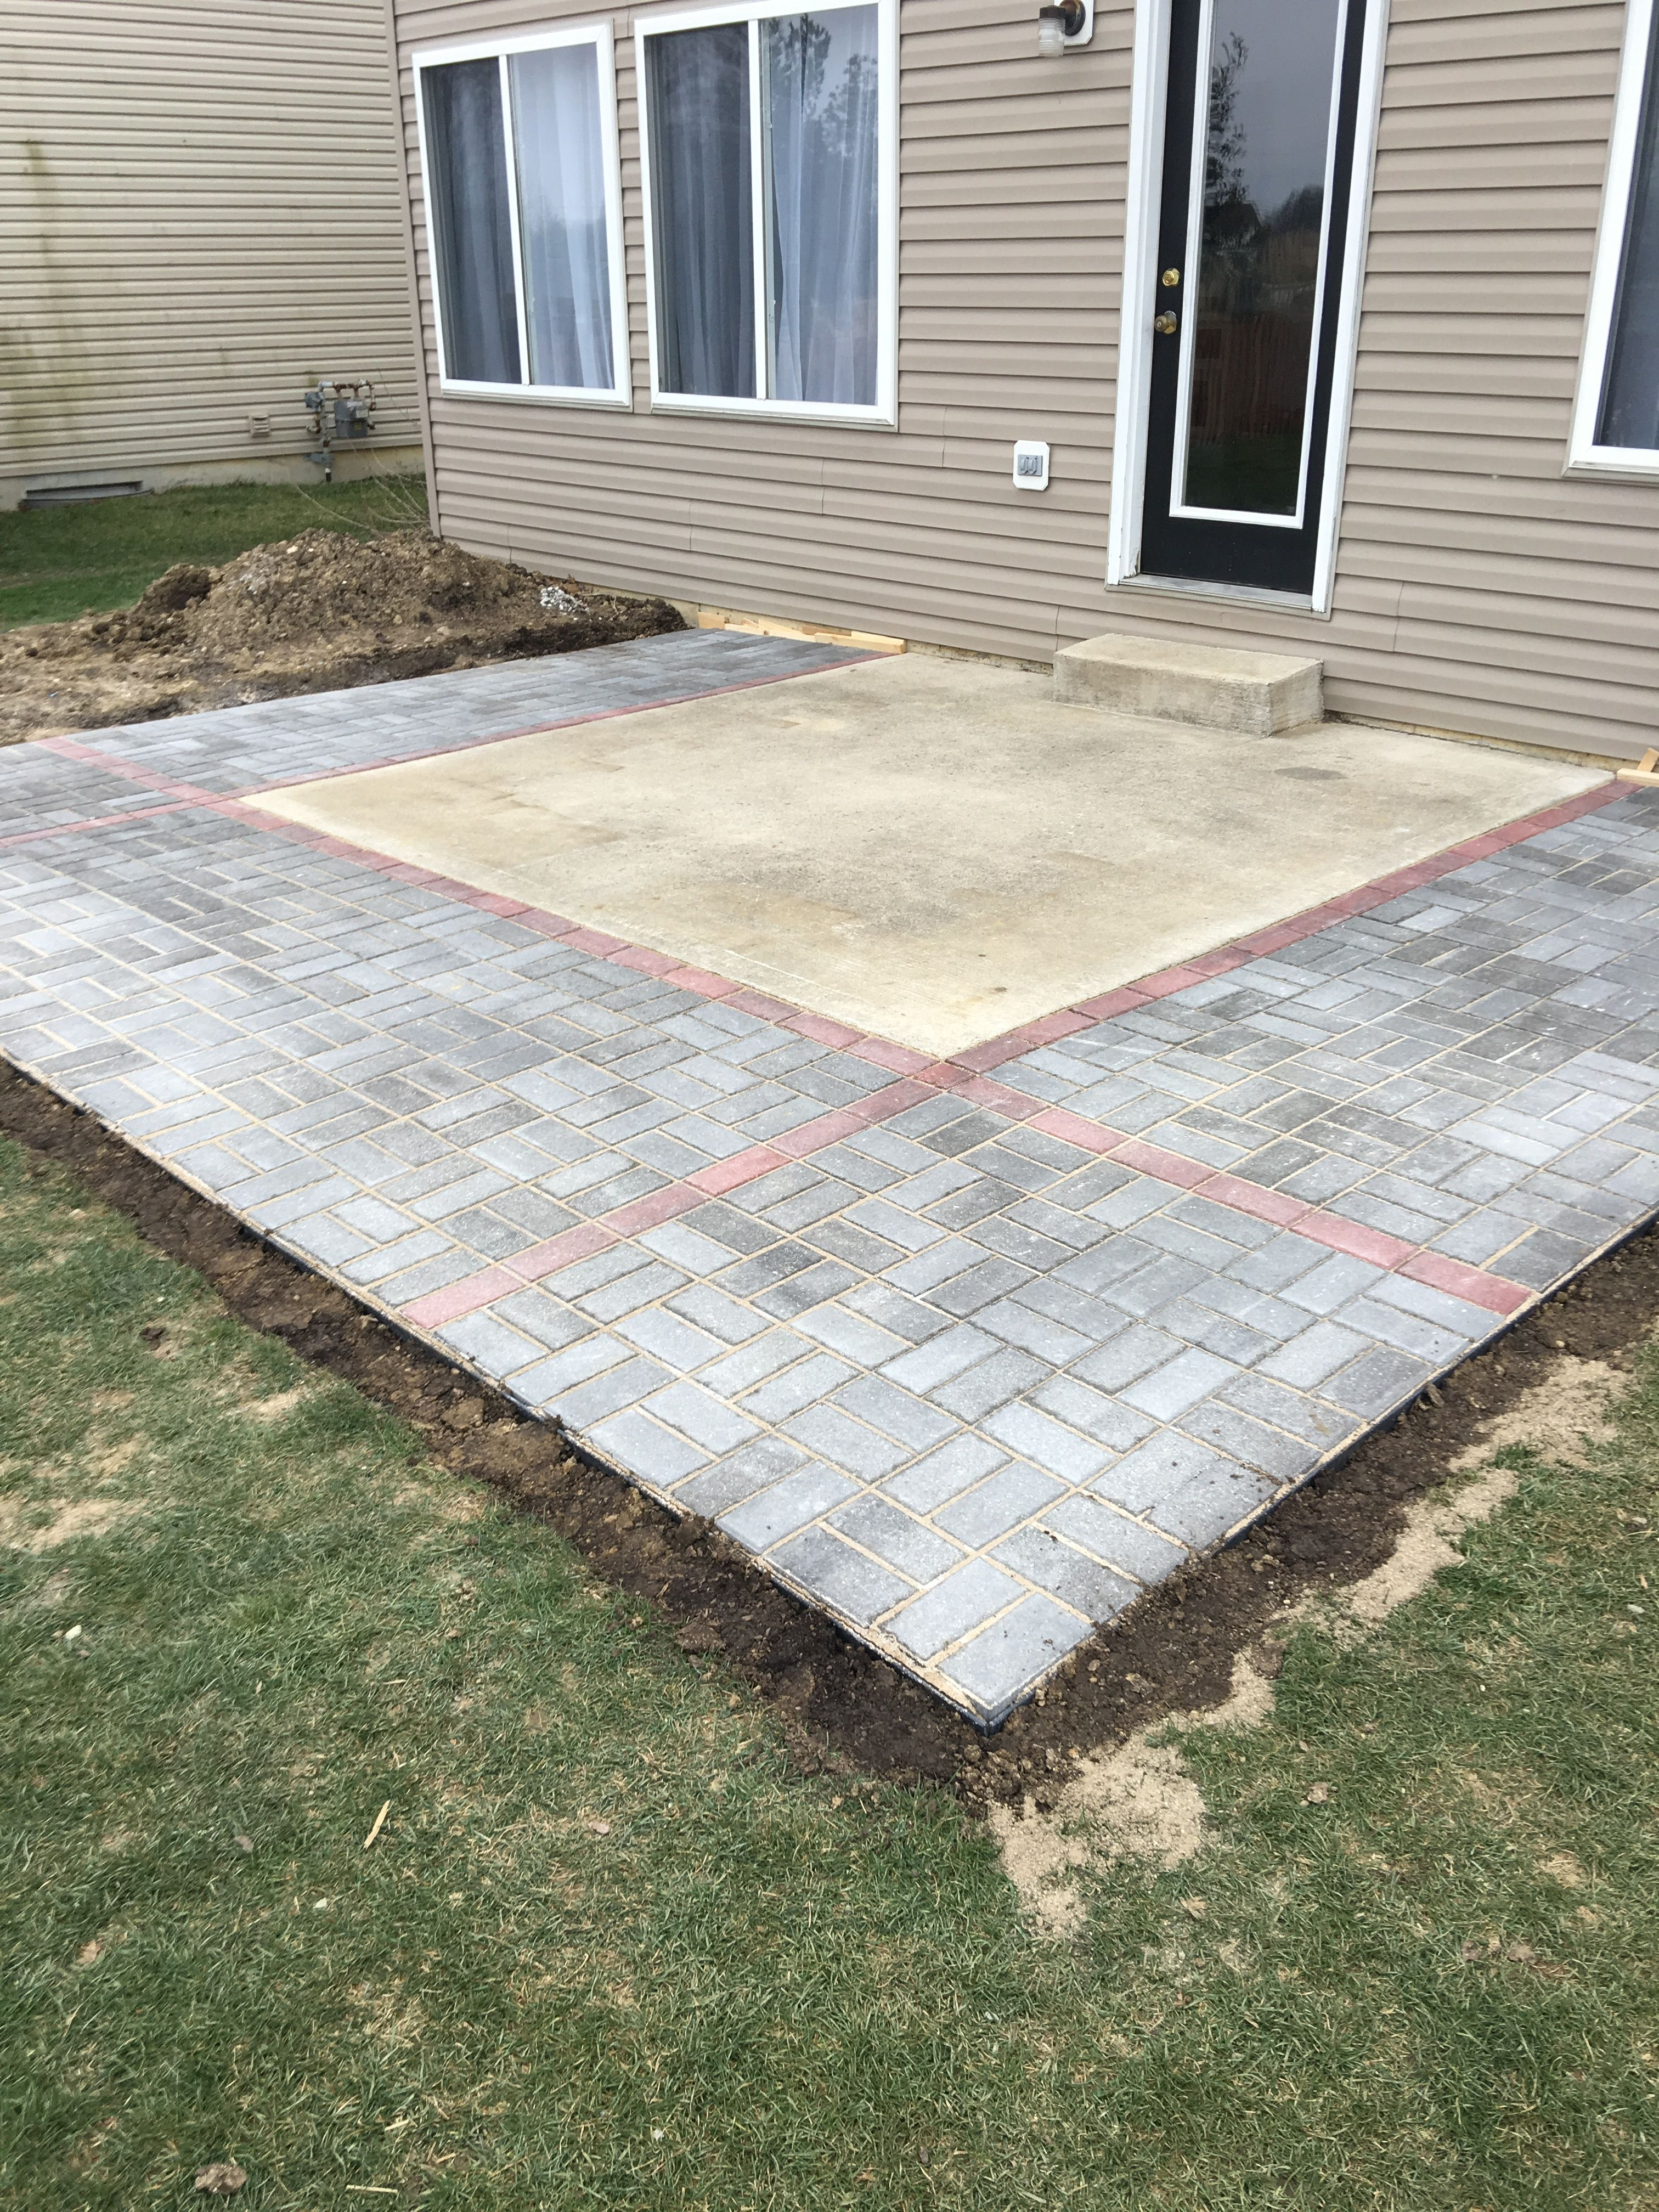 Cool Way To Extend A Concrete Slab Patio House Ideas In 2019 with regard to 15 Awesome Designs of How to Makeover Backyard Concrete Ideas